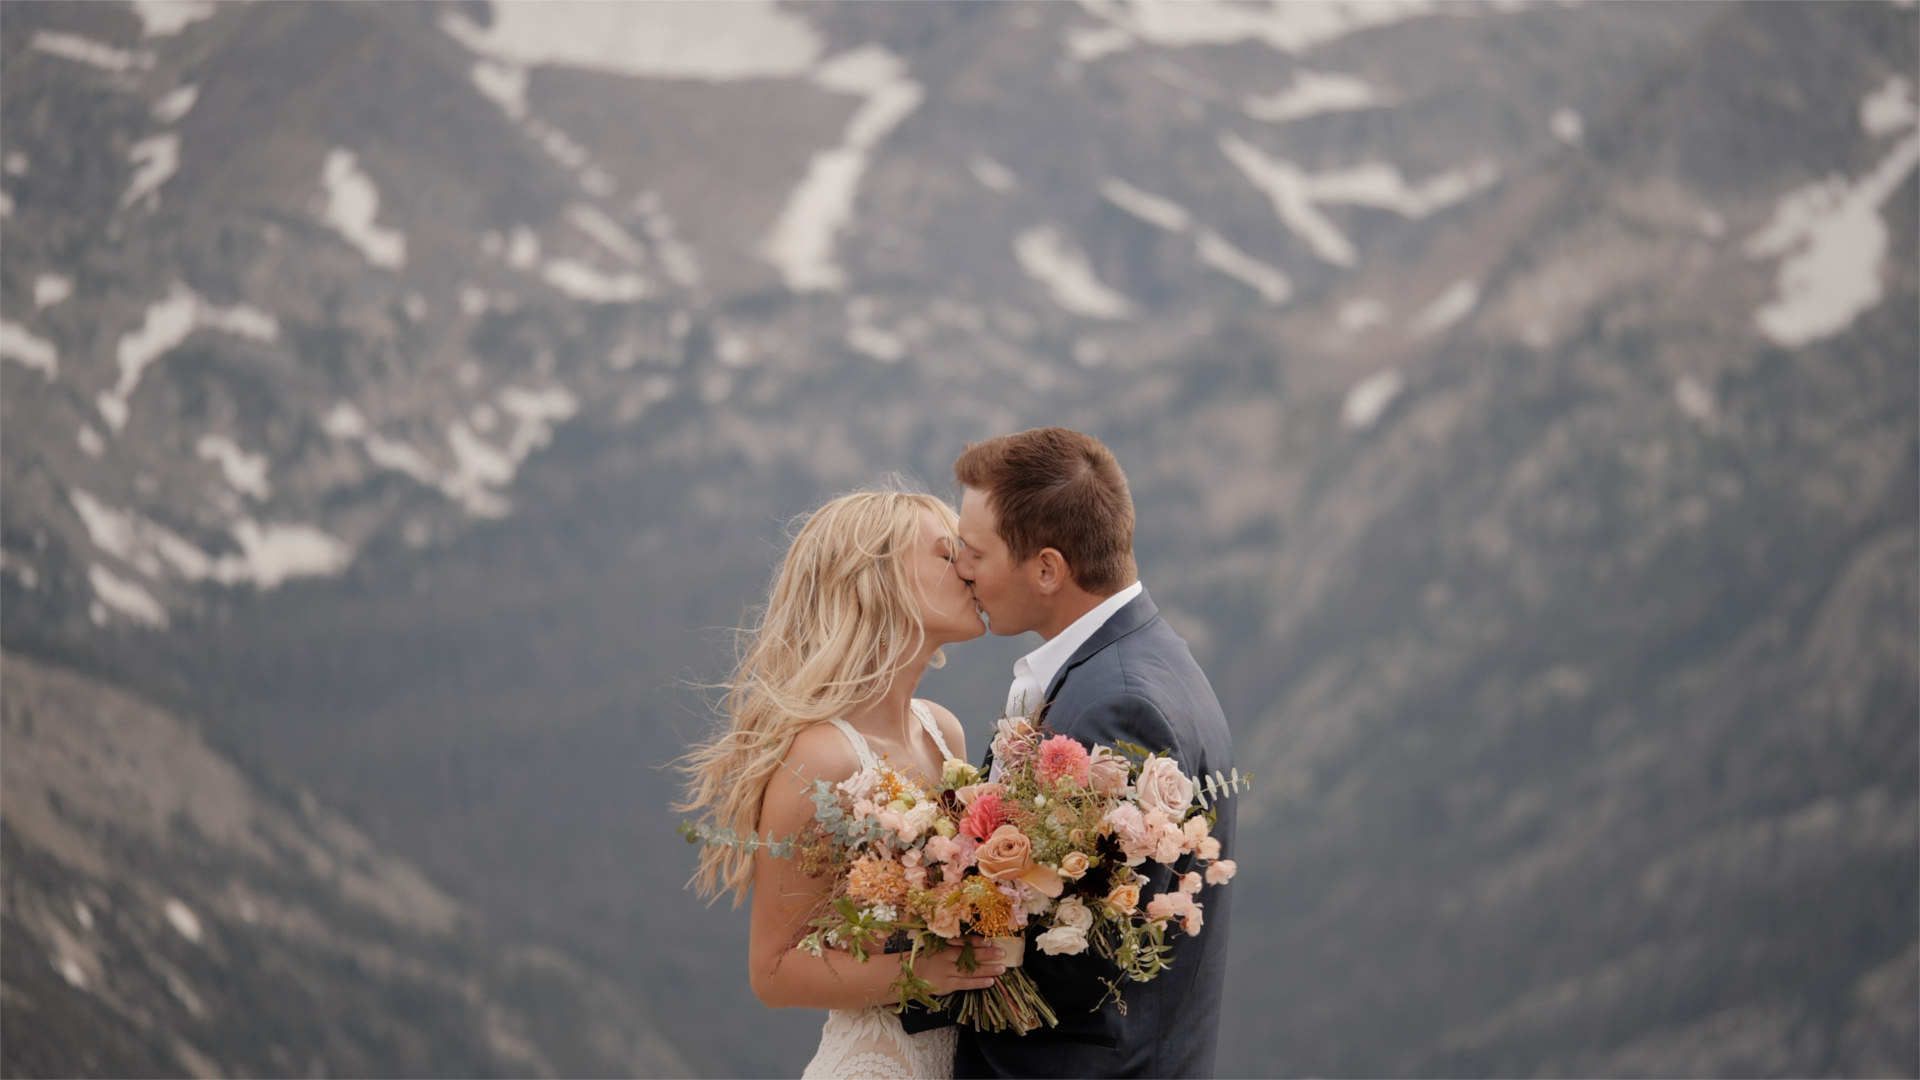 Jaylee + Riley | Estes Park, Colorado | Rocky Mountain National Park